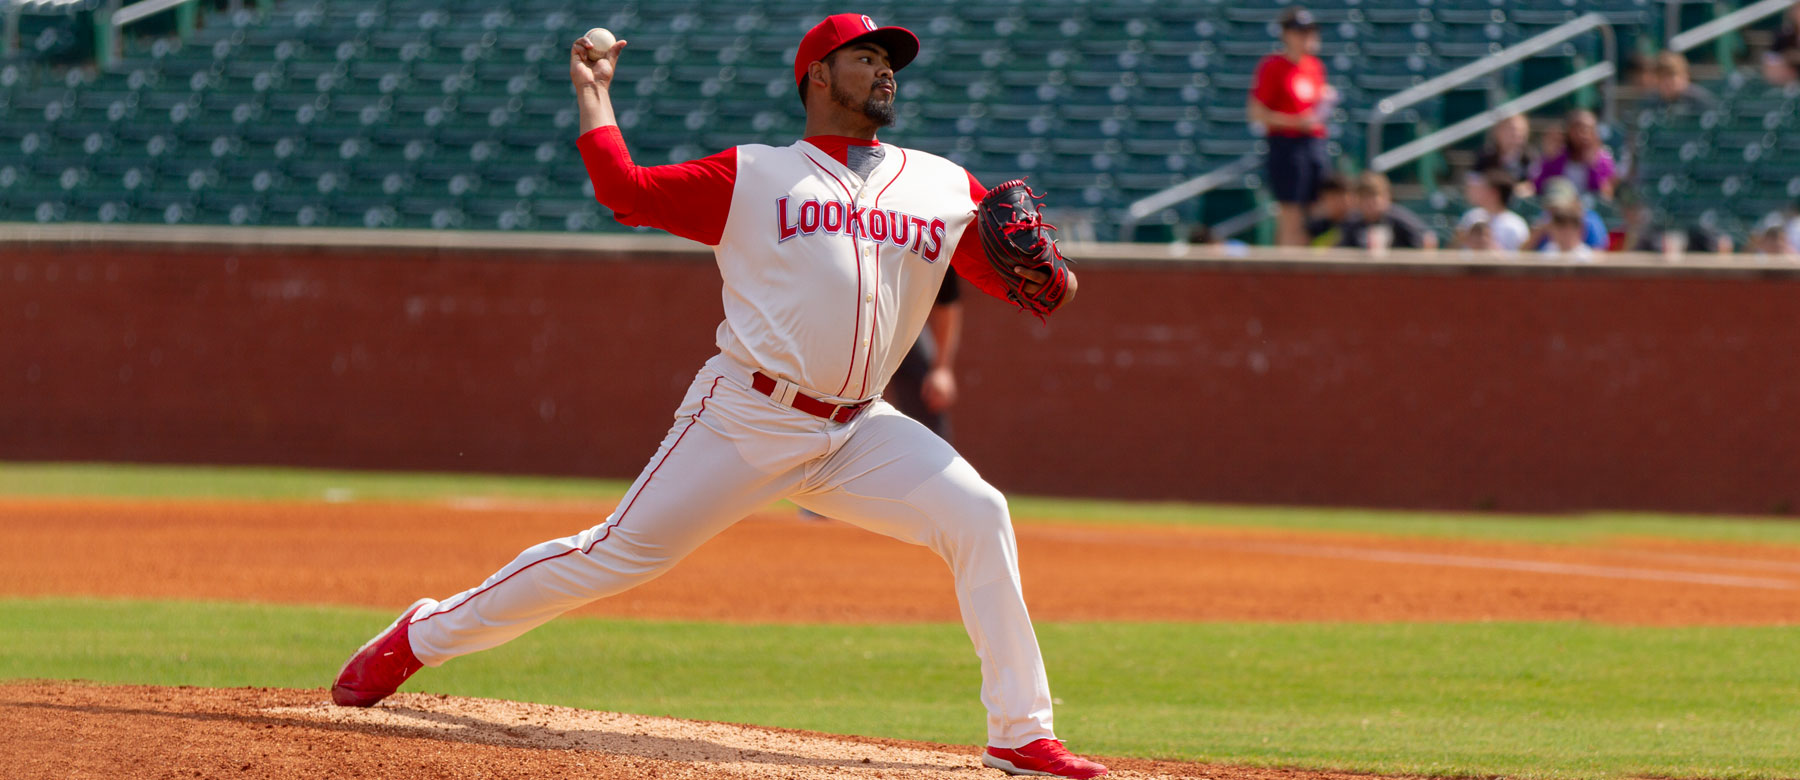 Reds Tony Santillan to the IL with triceps tendon strain | redsminorleagues.com